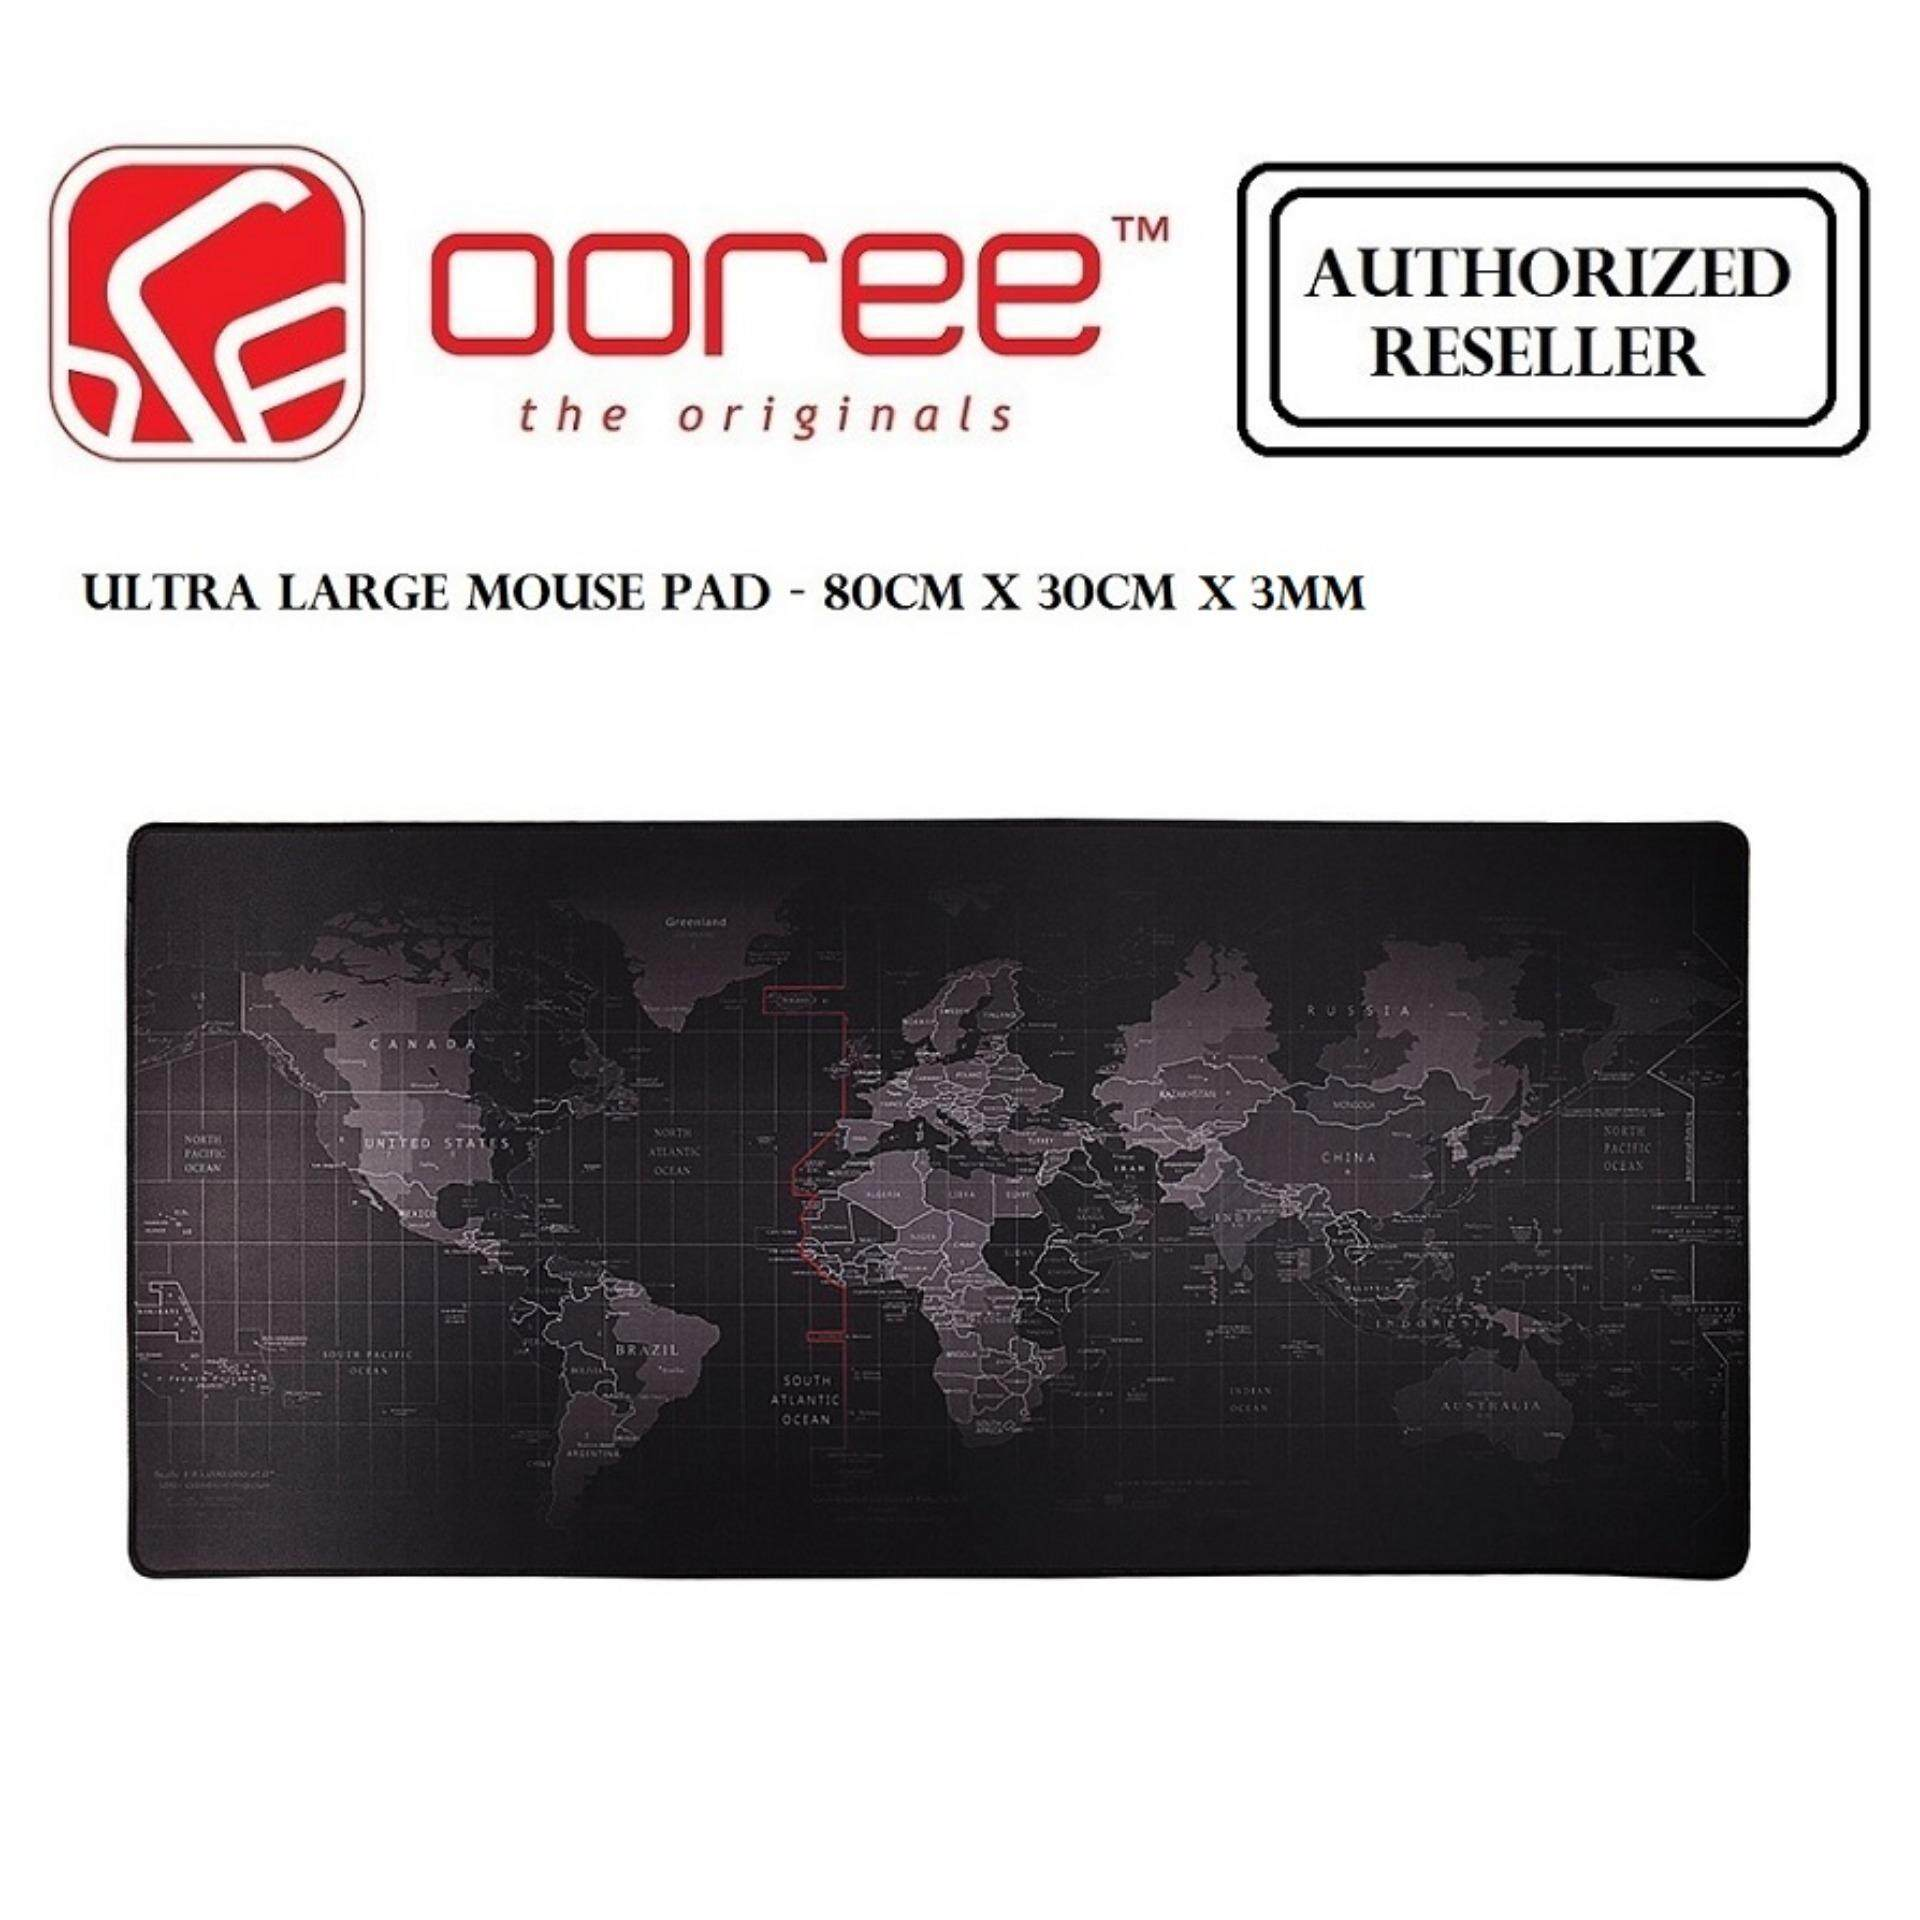 PREMIUM ANTI SLIP ULTRA LARGE GAMING MOUSE PAD RUBBER SOFT TEXTILE 3MM THICKNESS - 80CM X 30CM x 3MM Malaysia